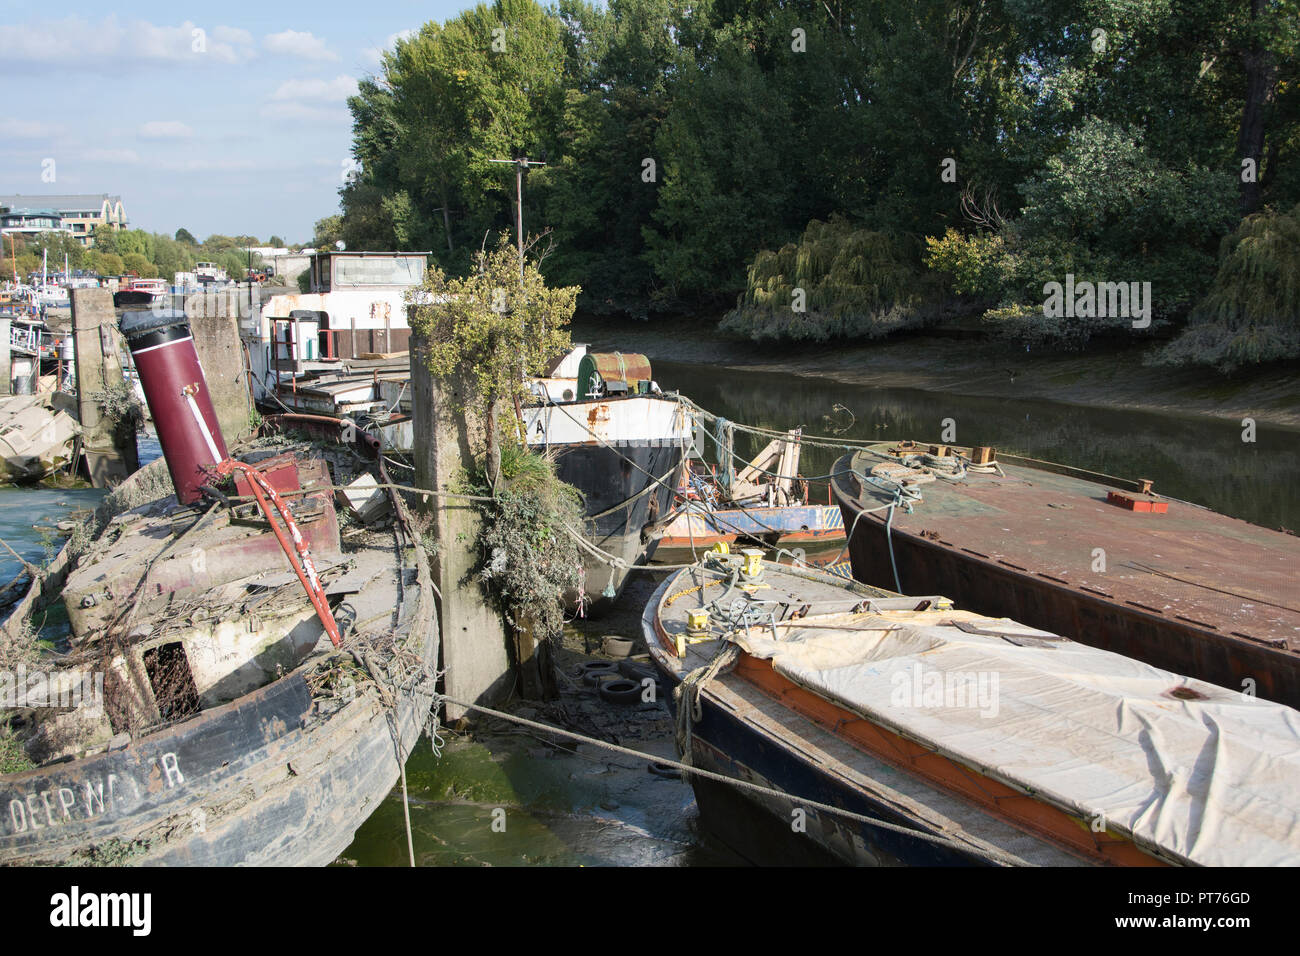 Abandoned and derelict houseboats on the river Thames at Watermans Park, near Kew Bridge, Brentford, London, UK - Stock Image